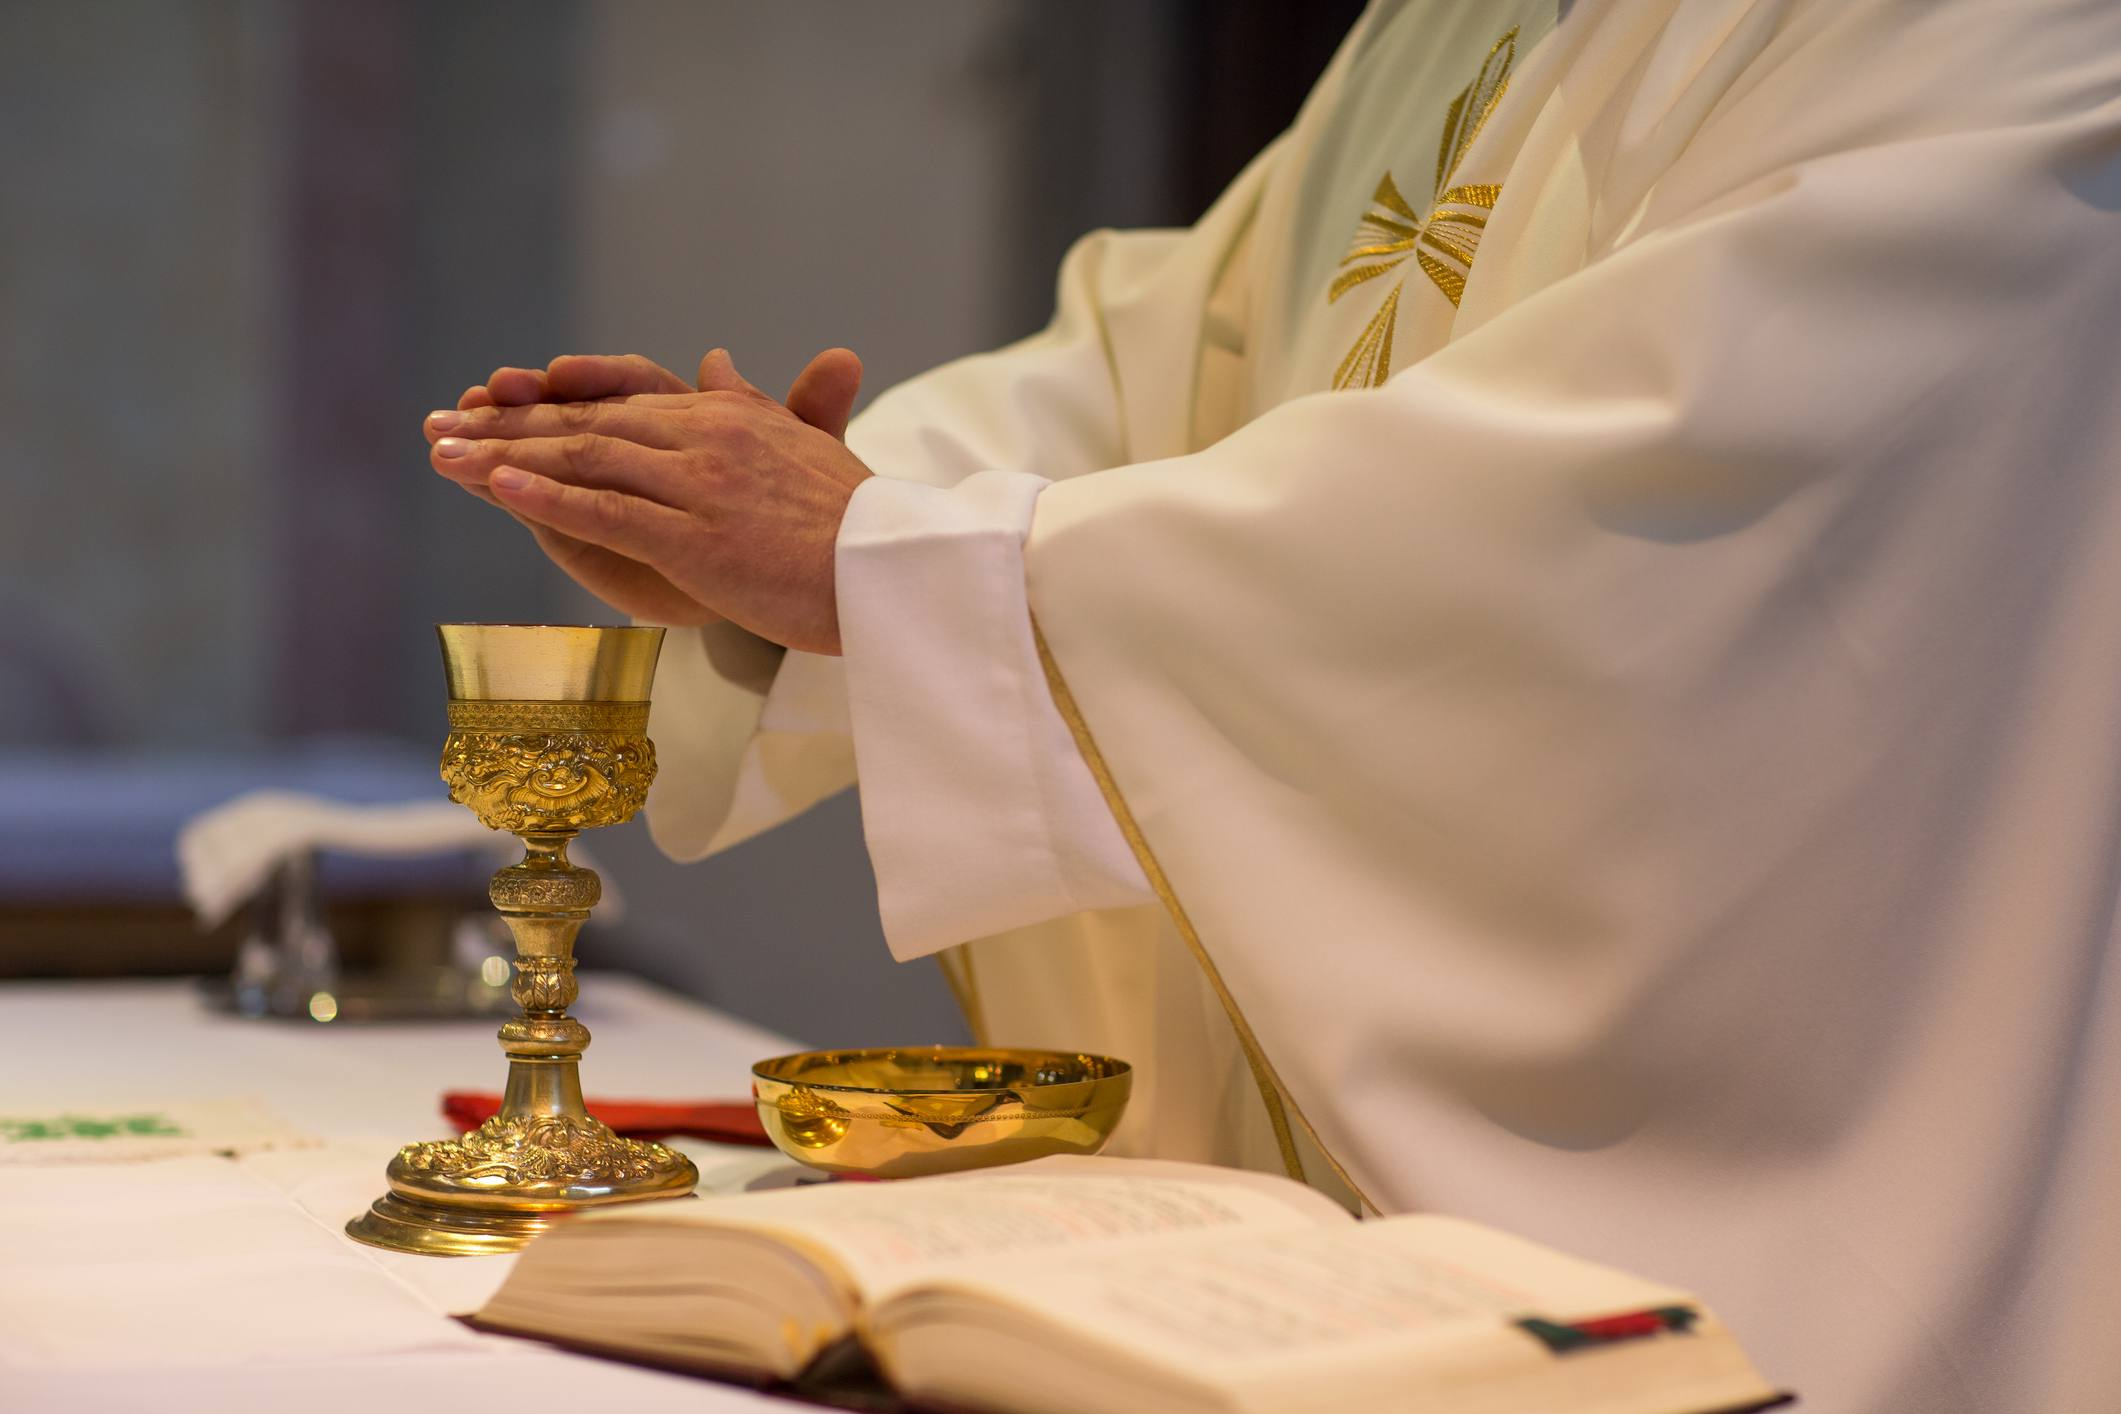 Close up of priest's hands over gold goblet next to bible